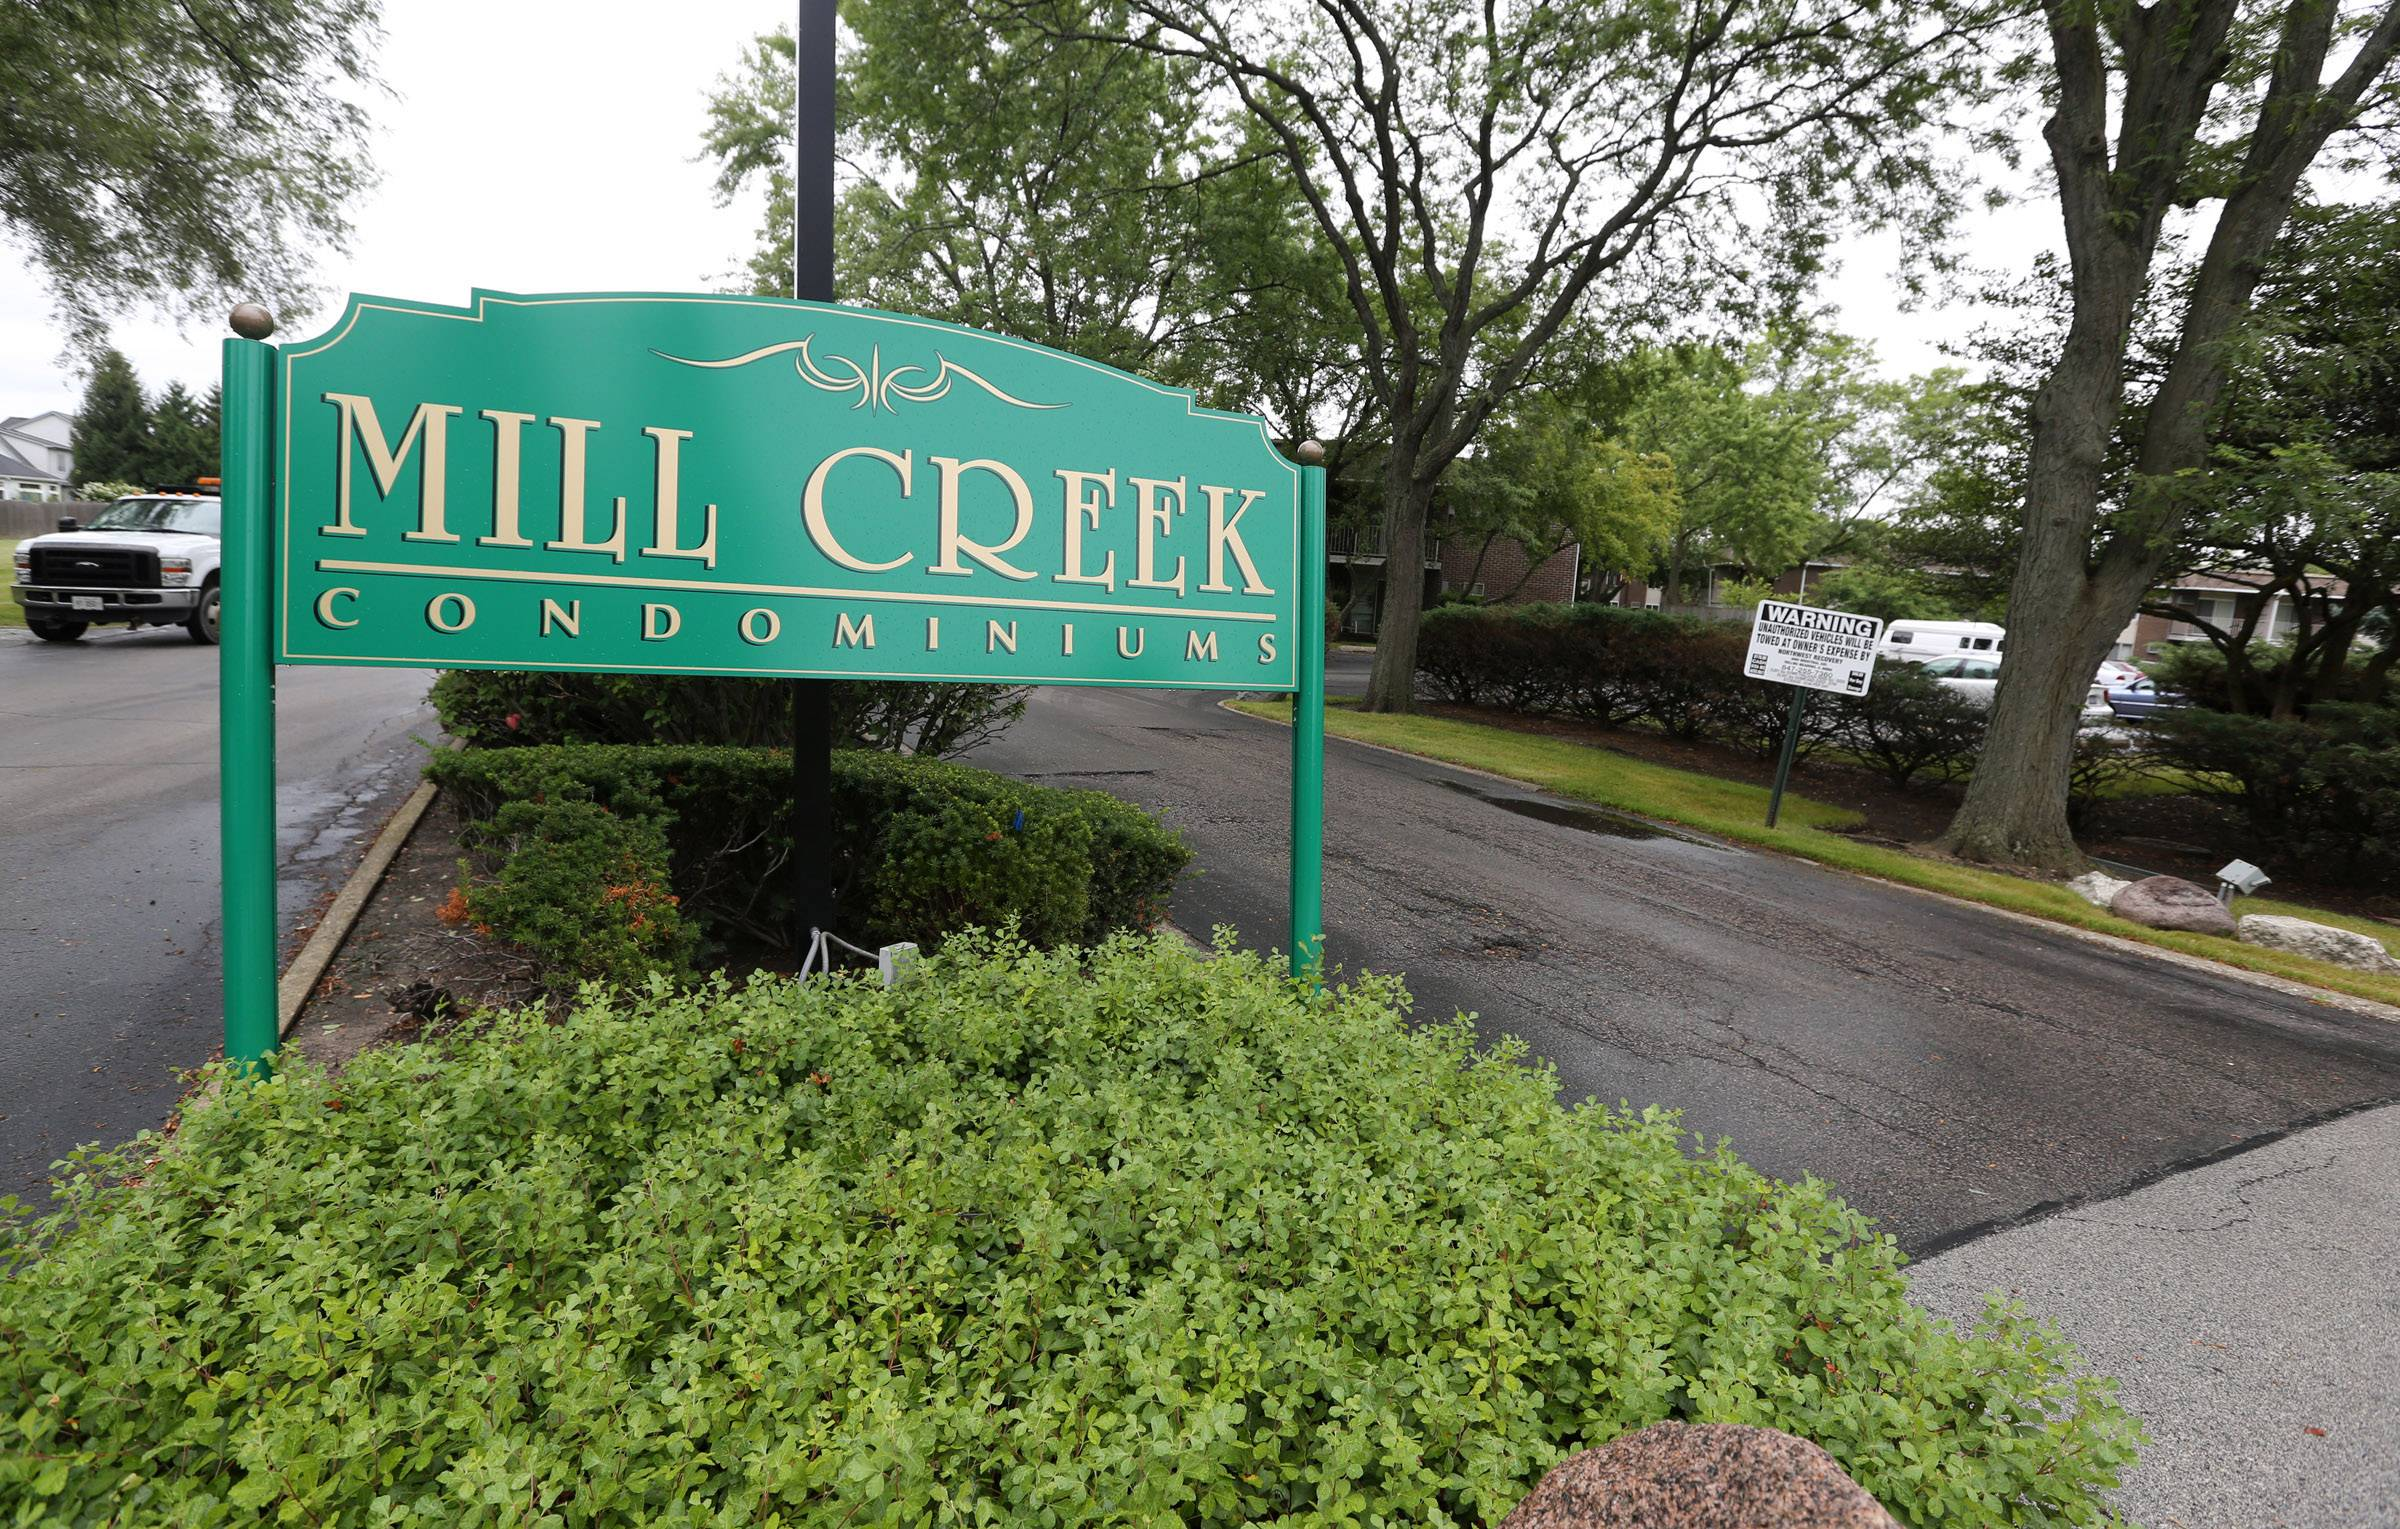 Mill Creek Condominiums in Buffalo Grove on Tuesday.